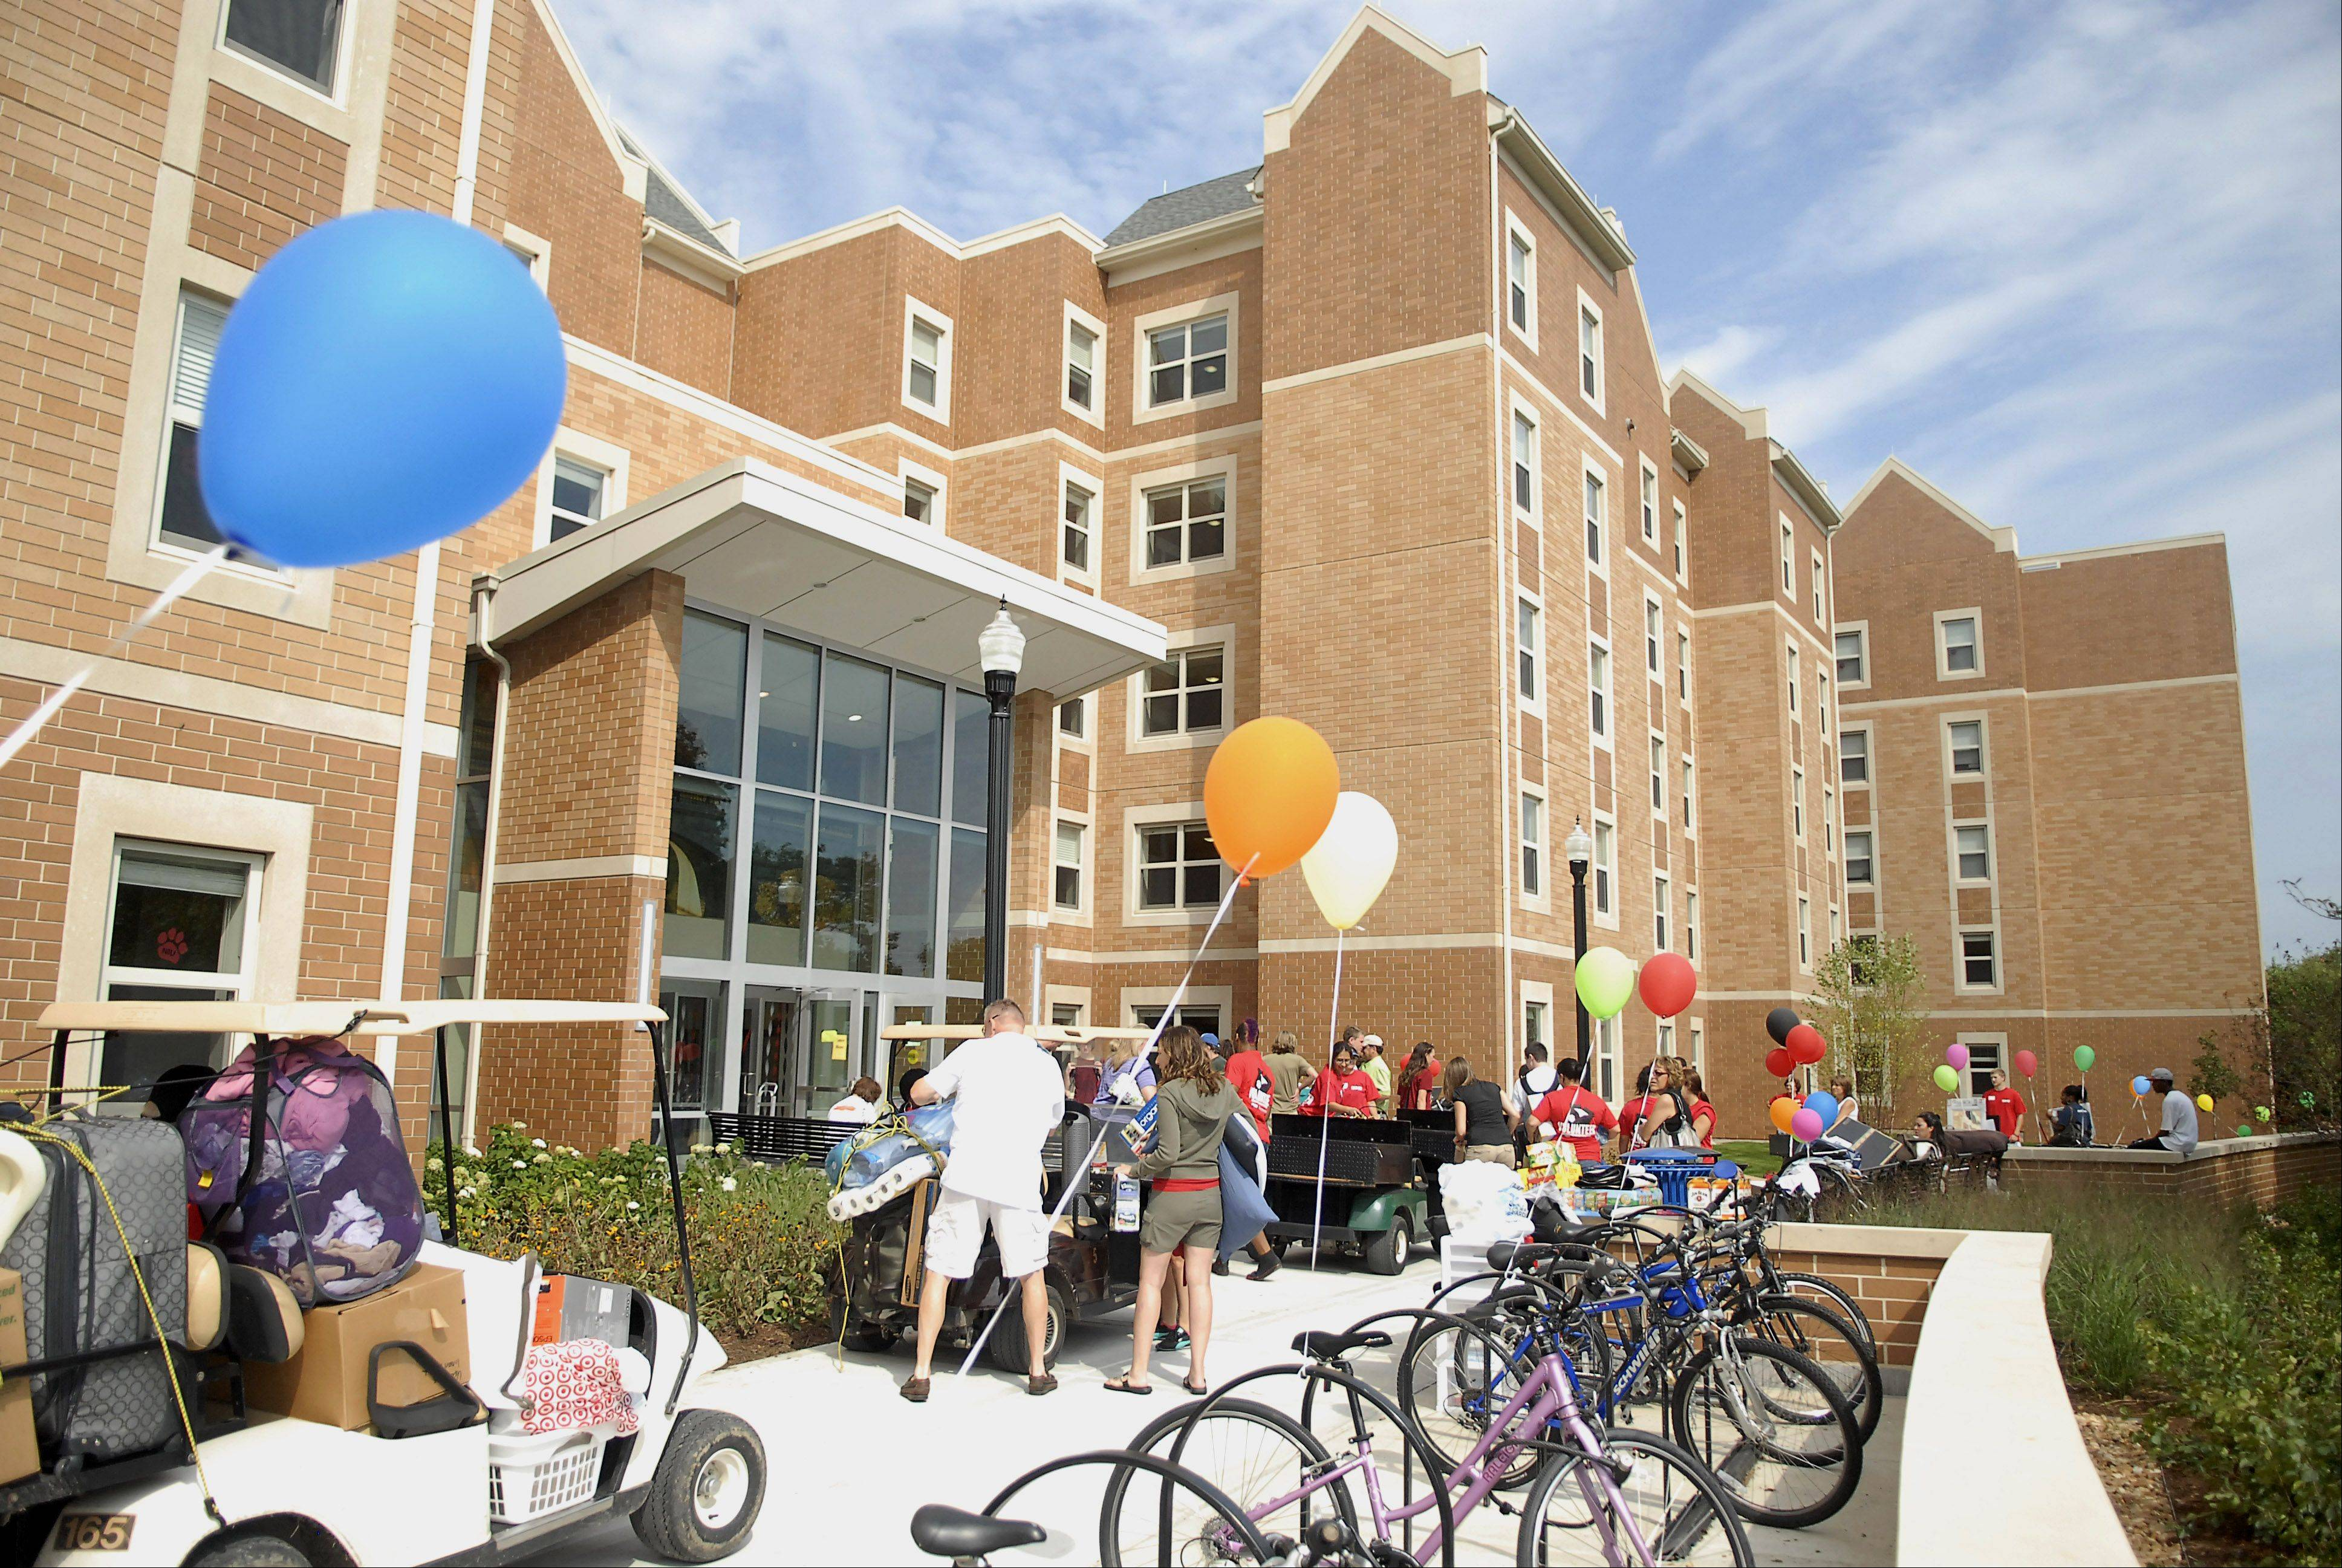 Students unload their belongings from golf carts at the main entrance to New Residence Hall East at Northern Illinois University in DeKalb on Thursday, August 23.